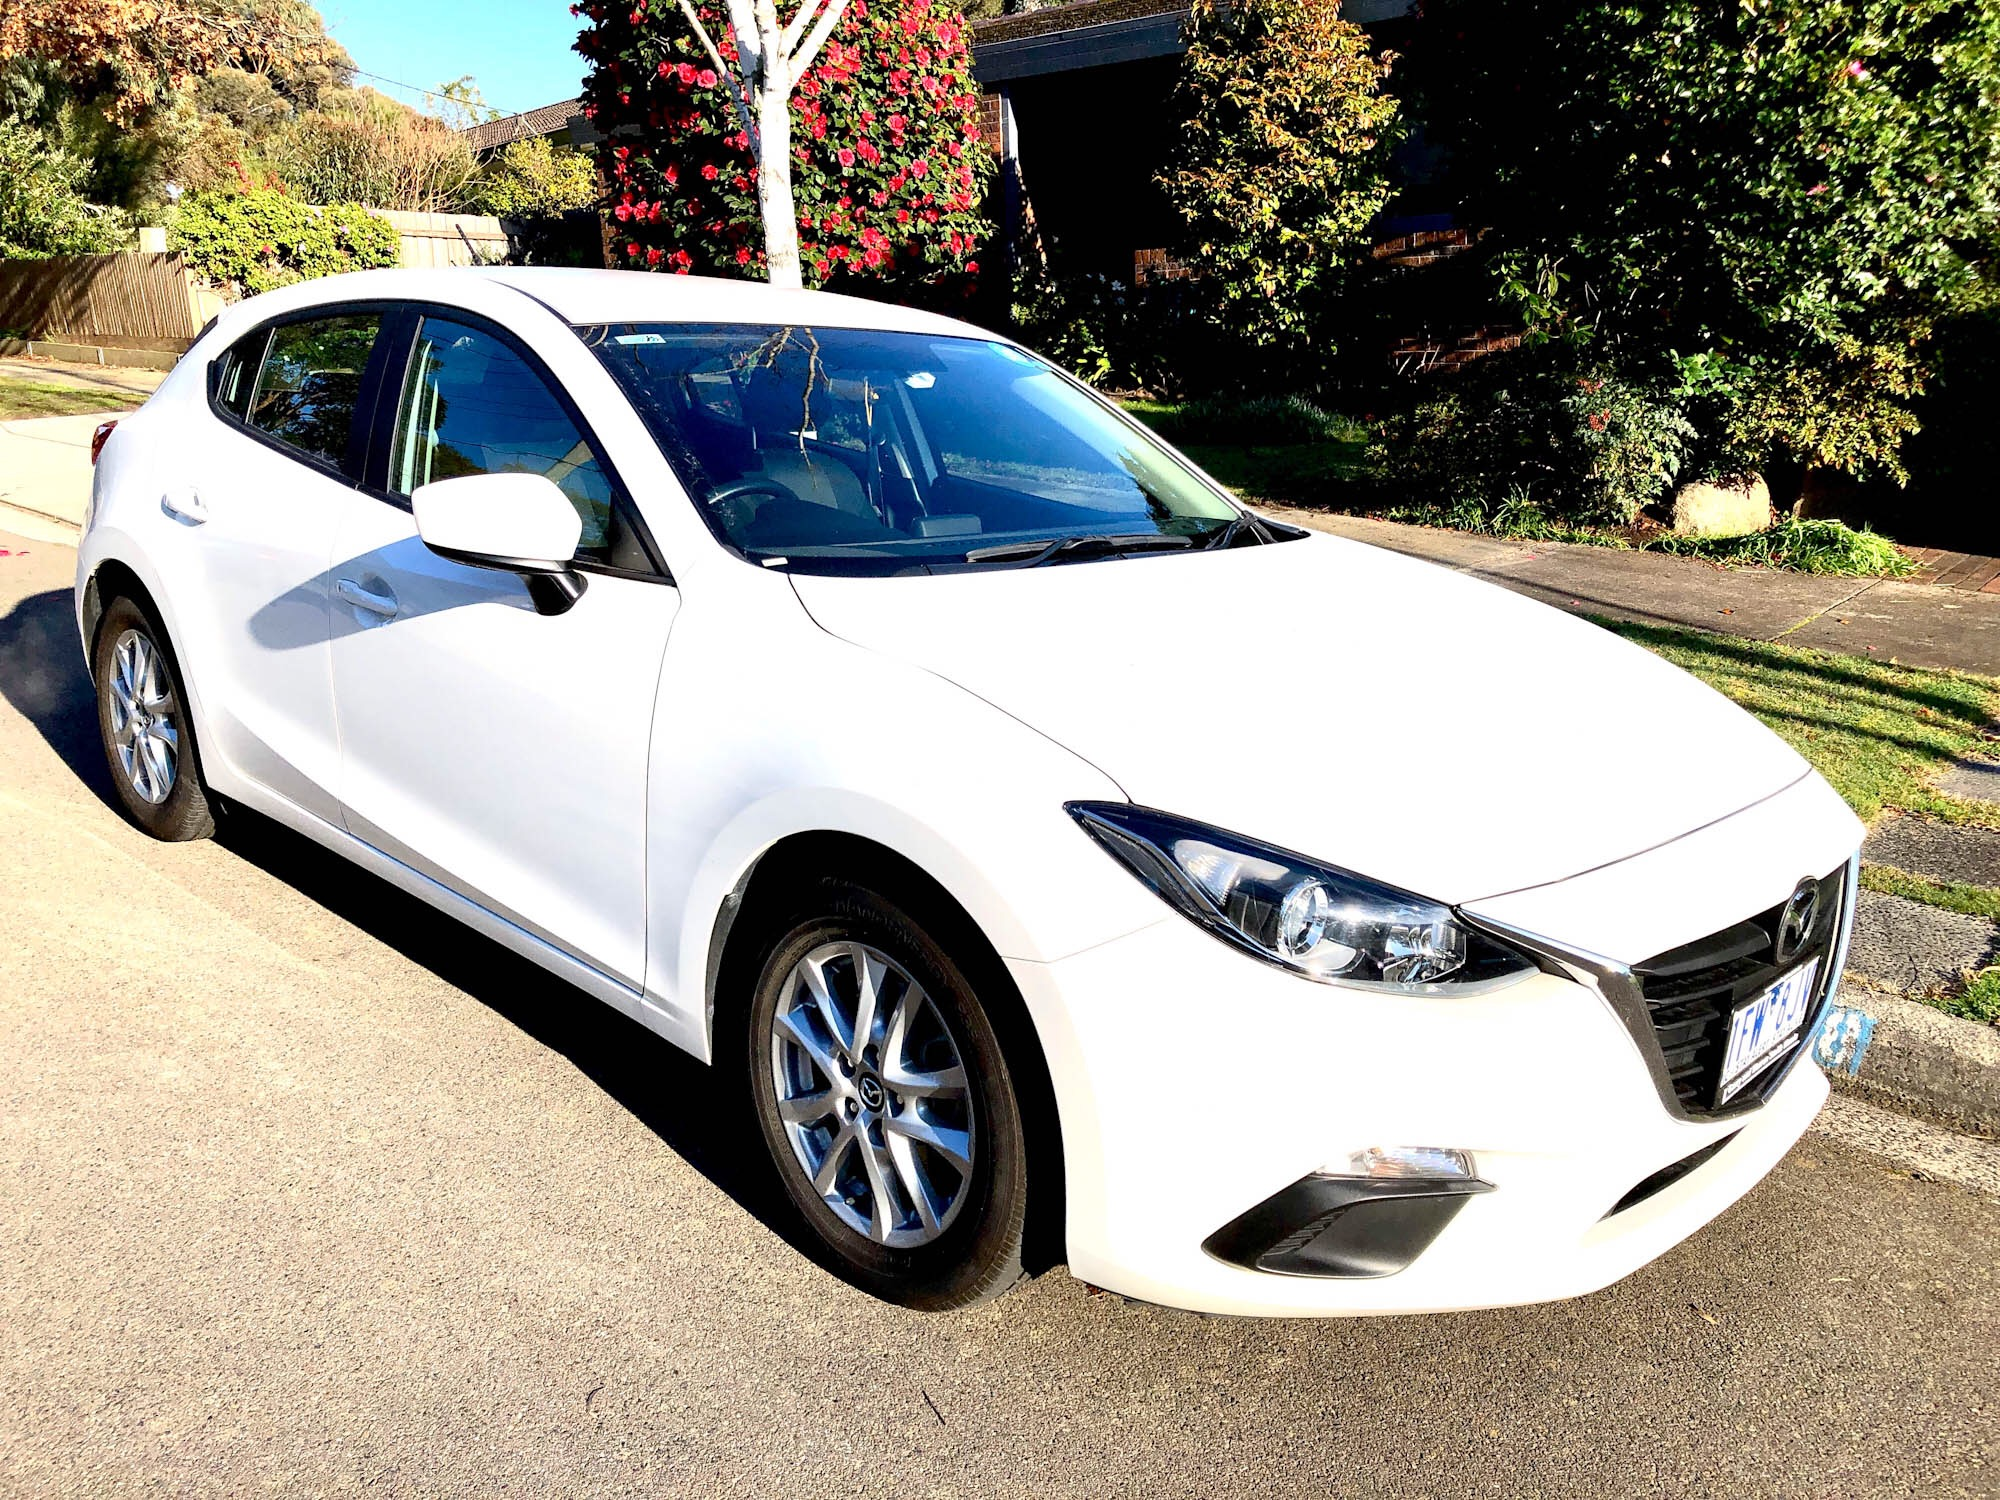 Picture of Aruna's 2015 Mazda 3